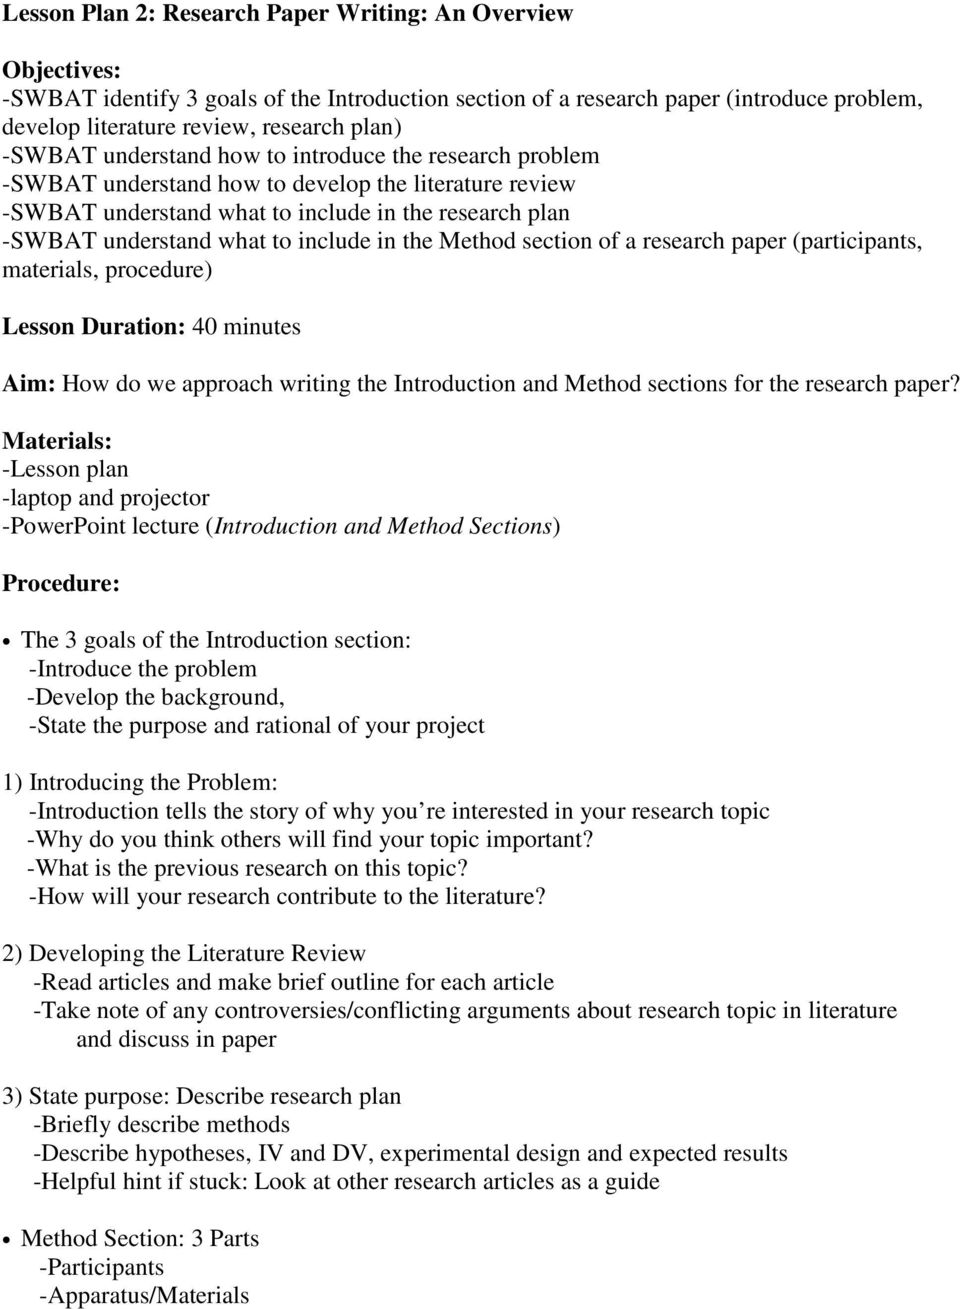 022 Research Paper Methods Section In Page 16 Sensational A Results Of Scientific Apa Example Pdf Full